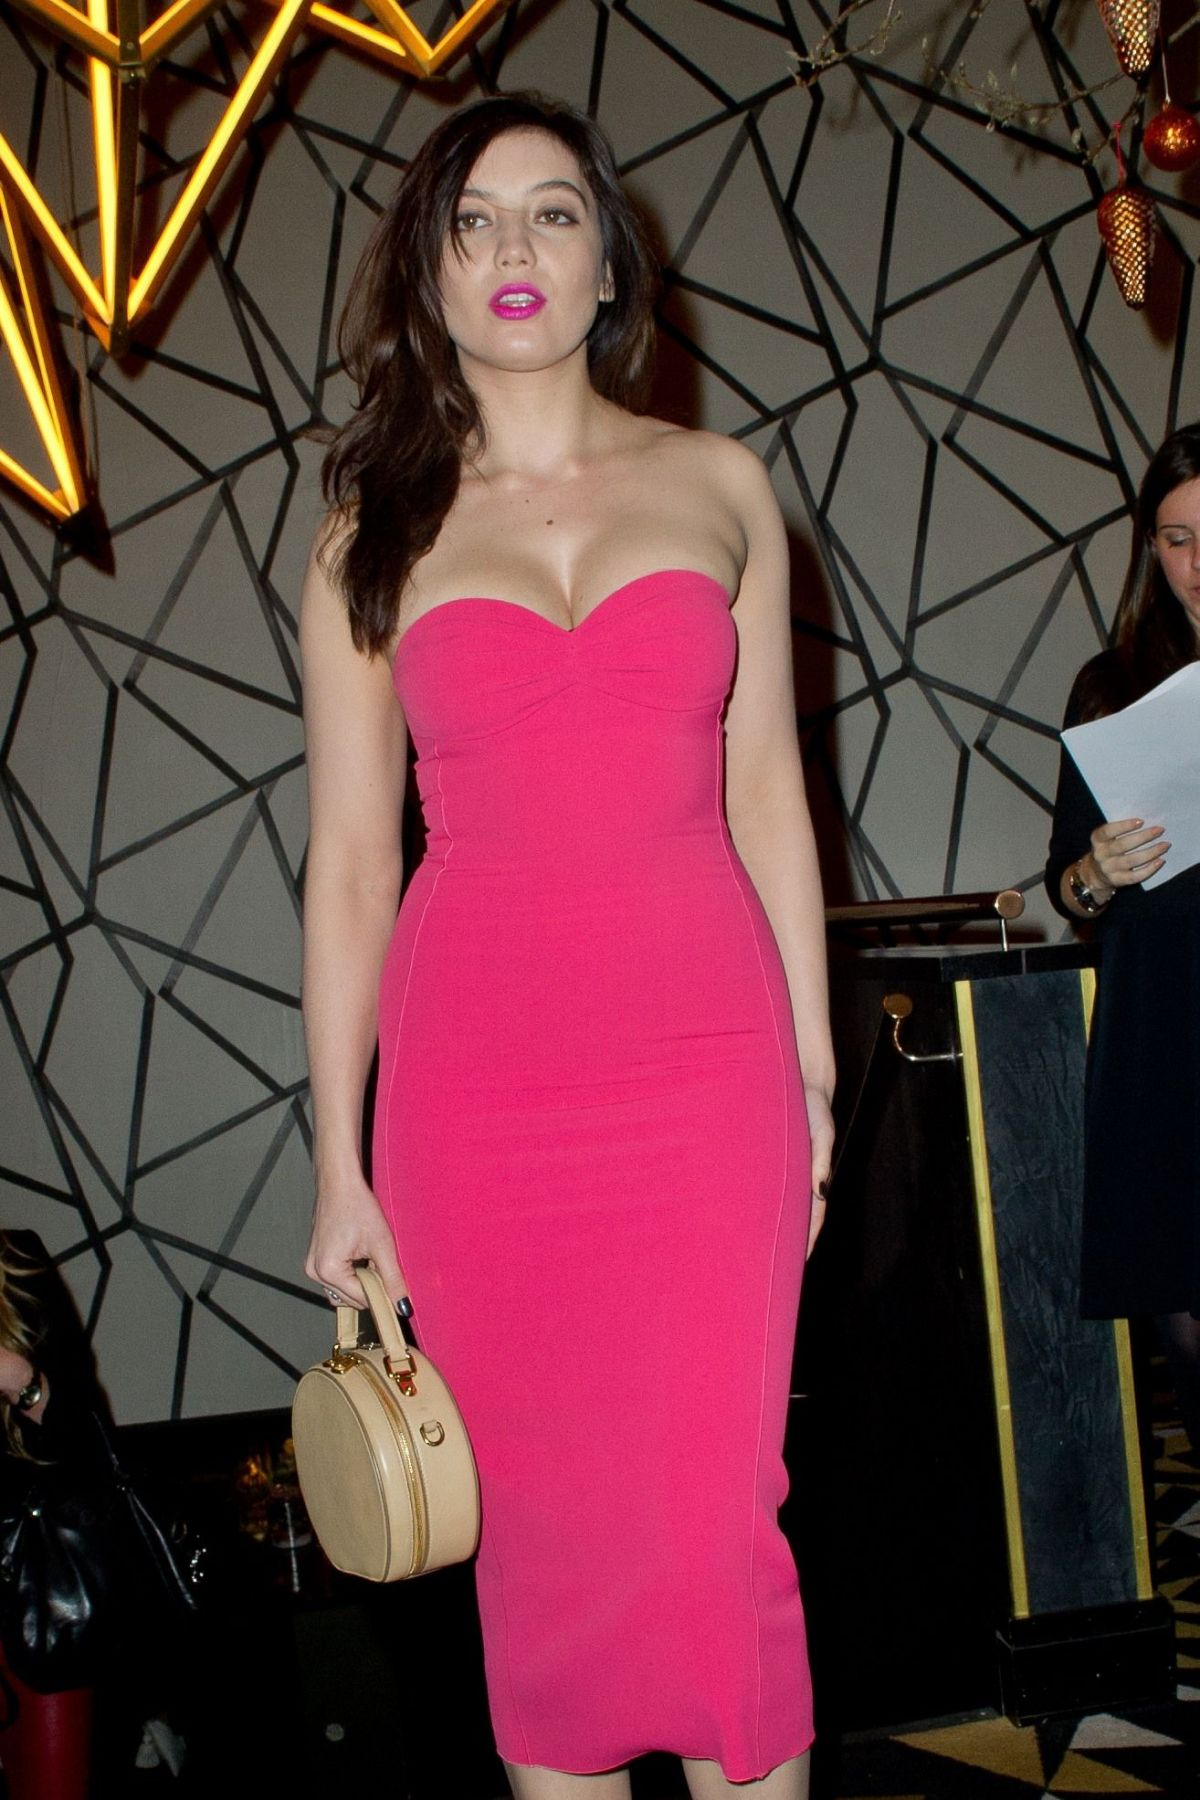 DAISY LOWE at GQ Christmas Party - HawtCelebs